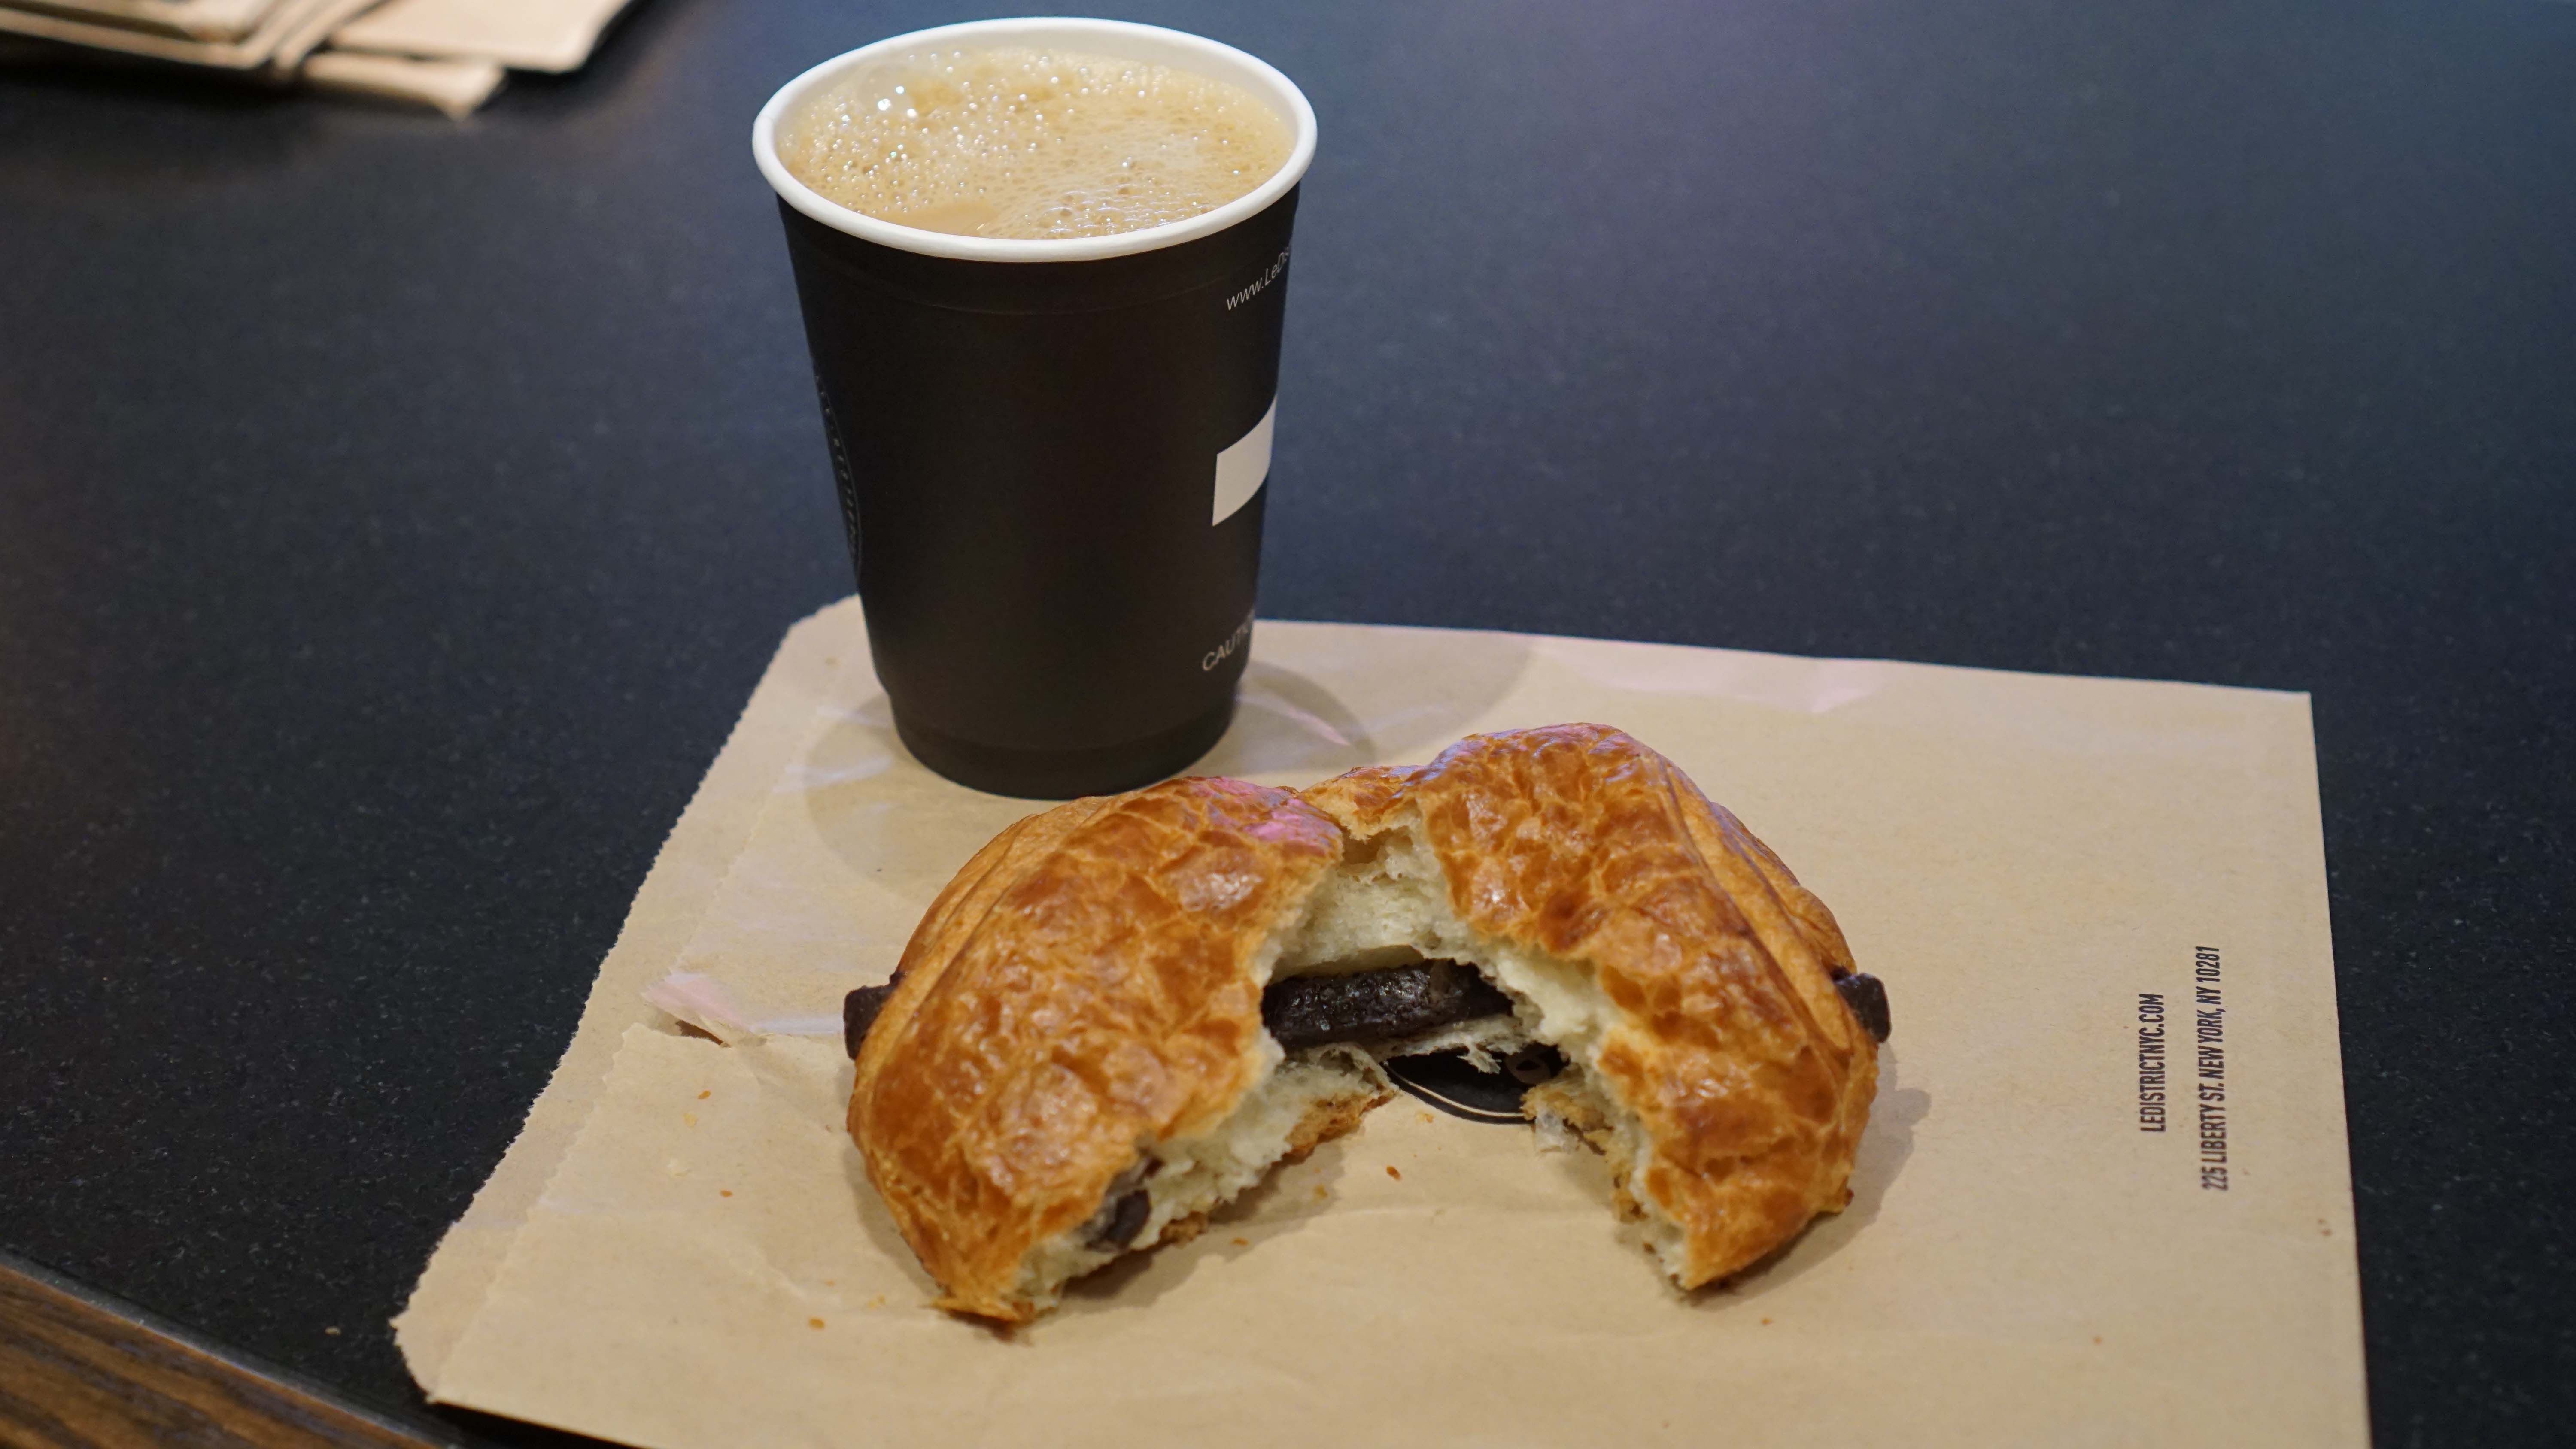 Le District bakery chocolare pain and coffee